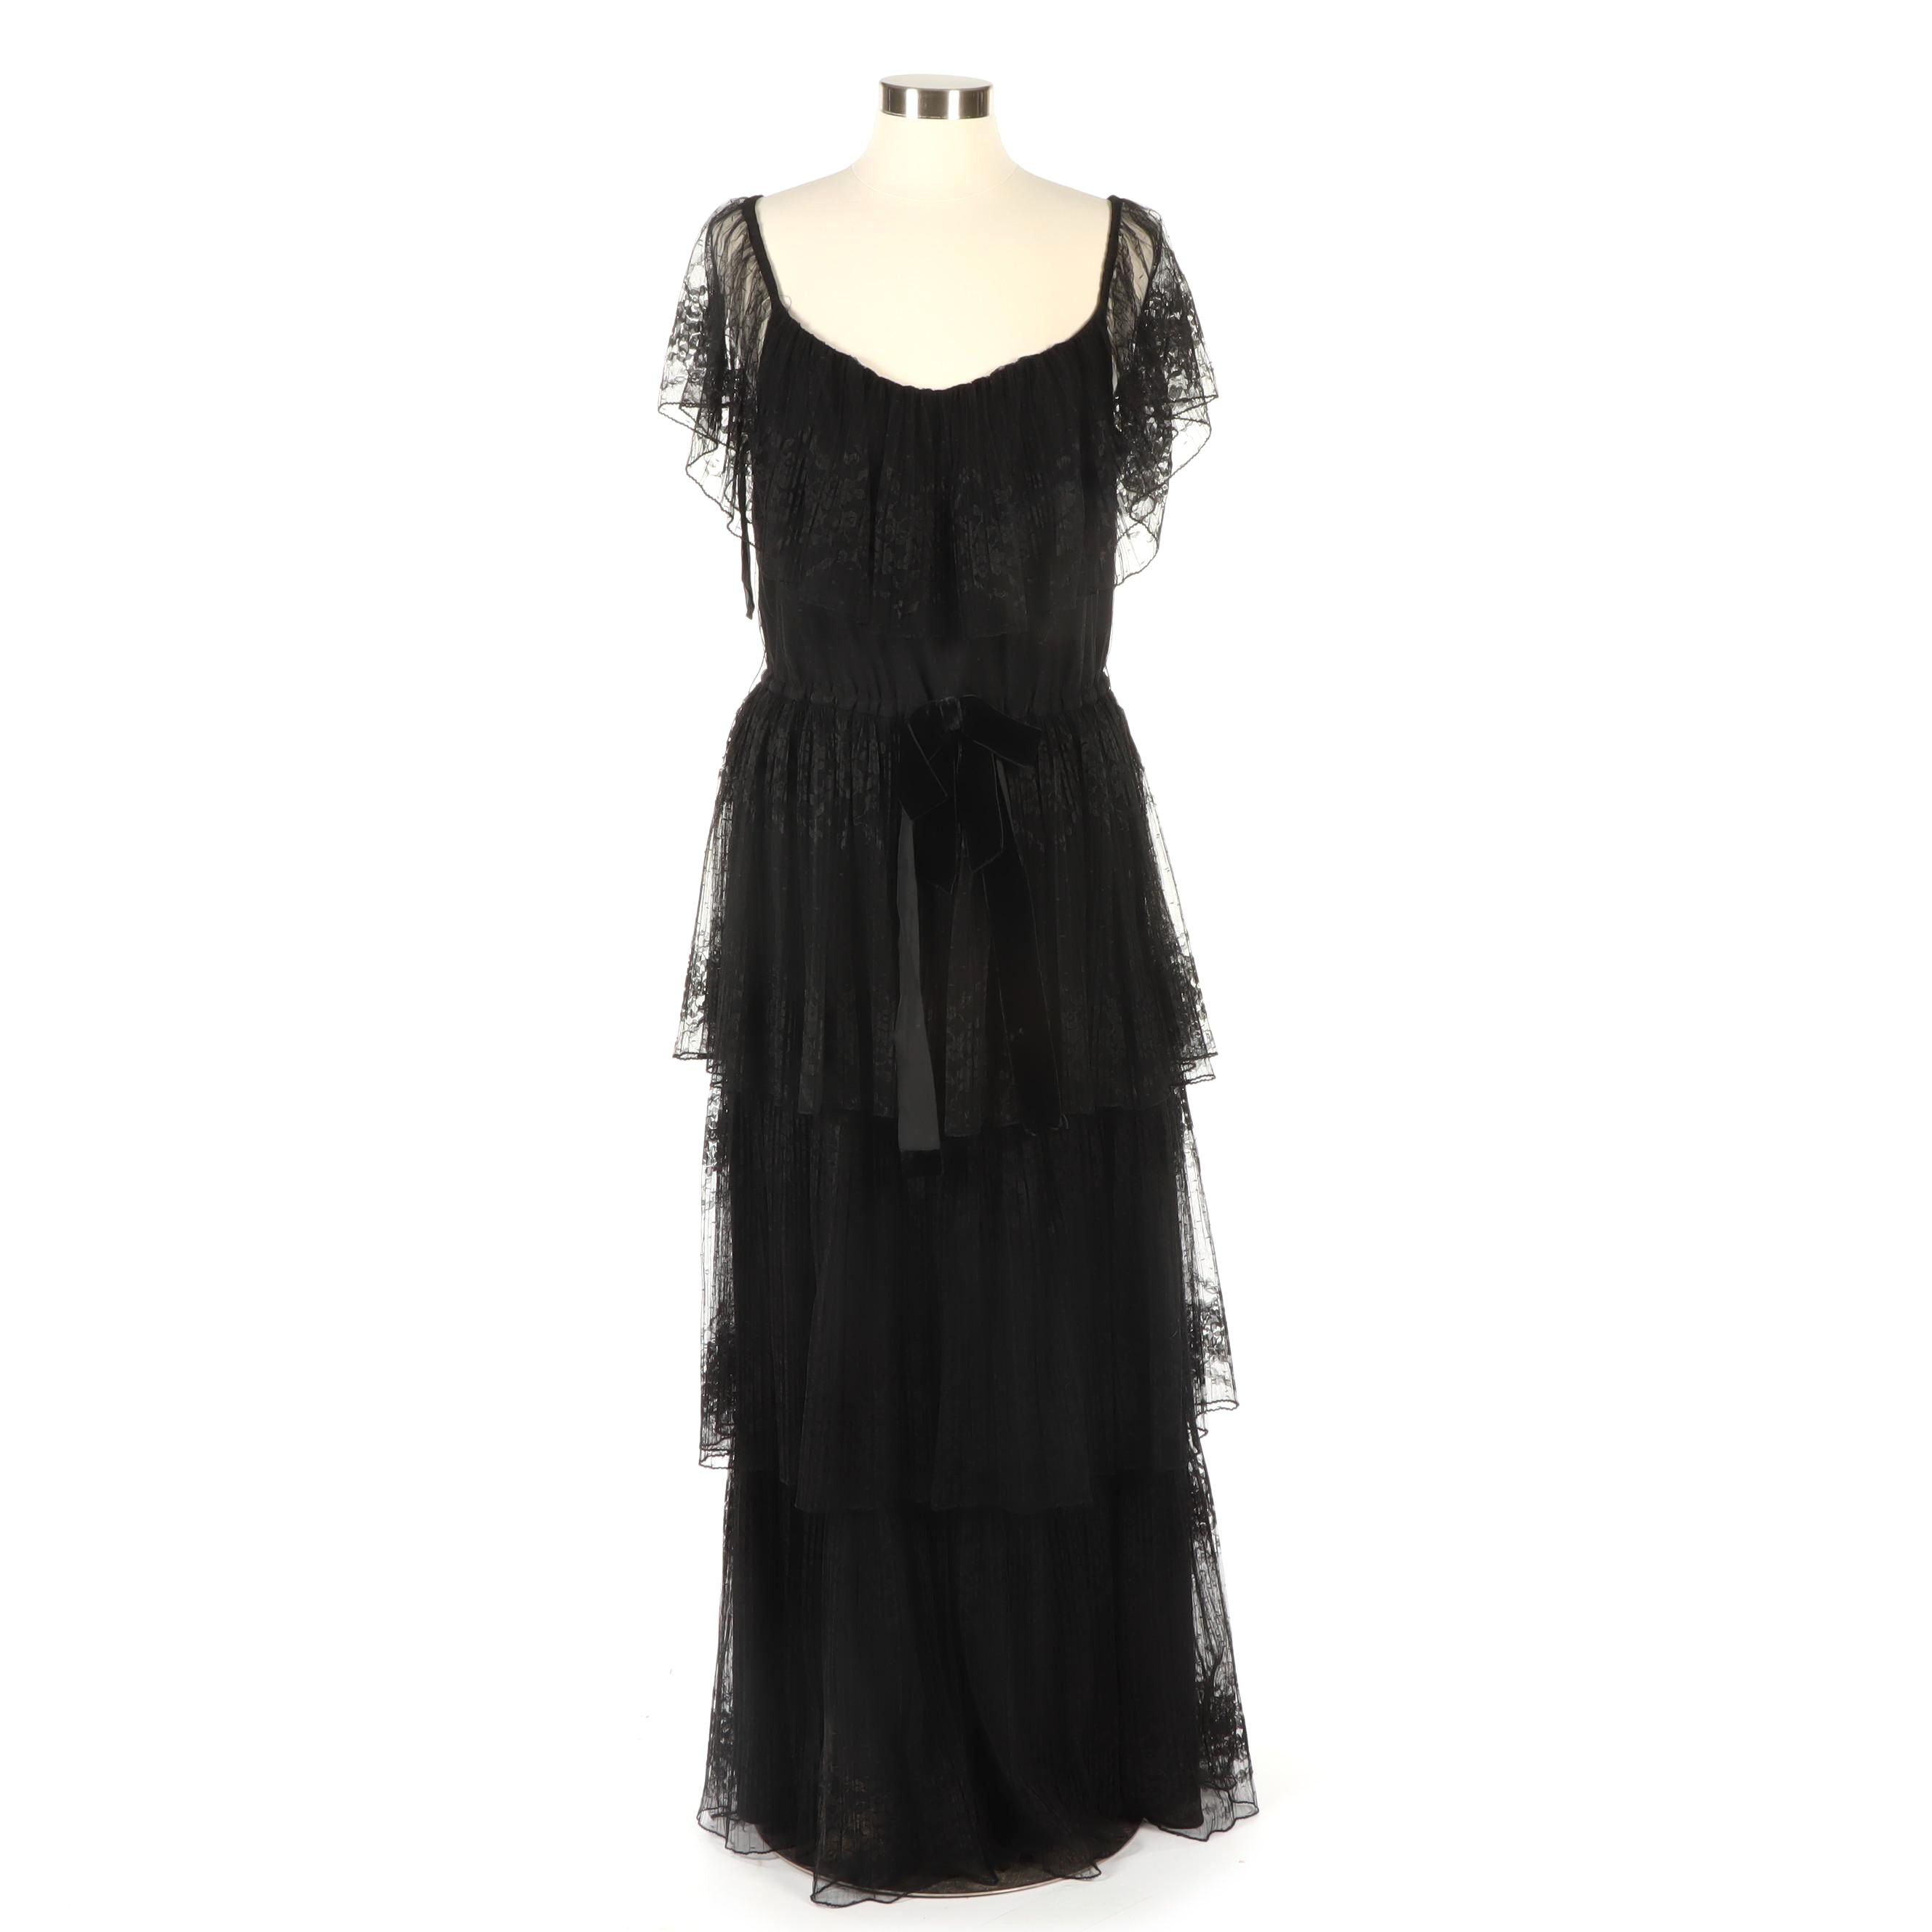 Jeri Modes New York Lace Evening Dress with Black Velvet Bow, Vintage